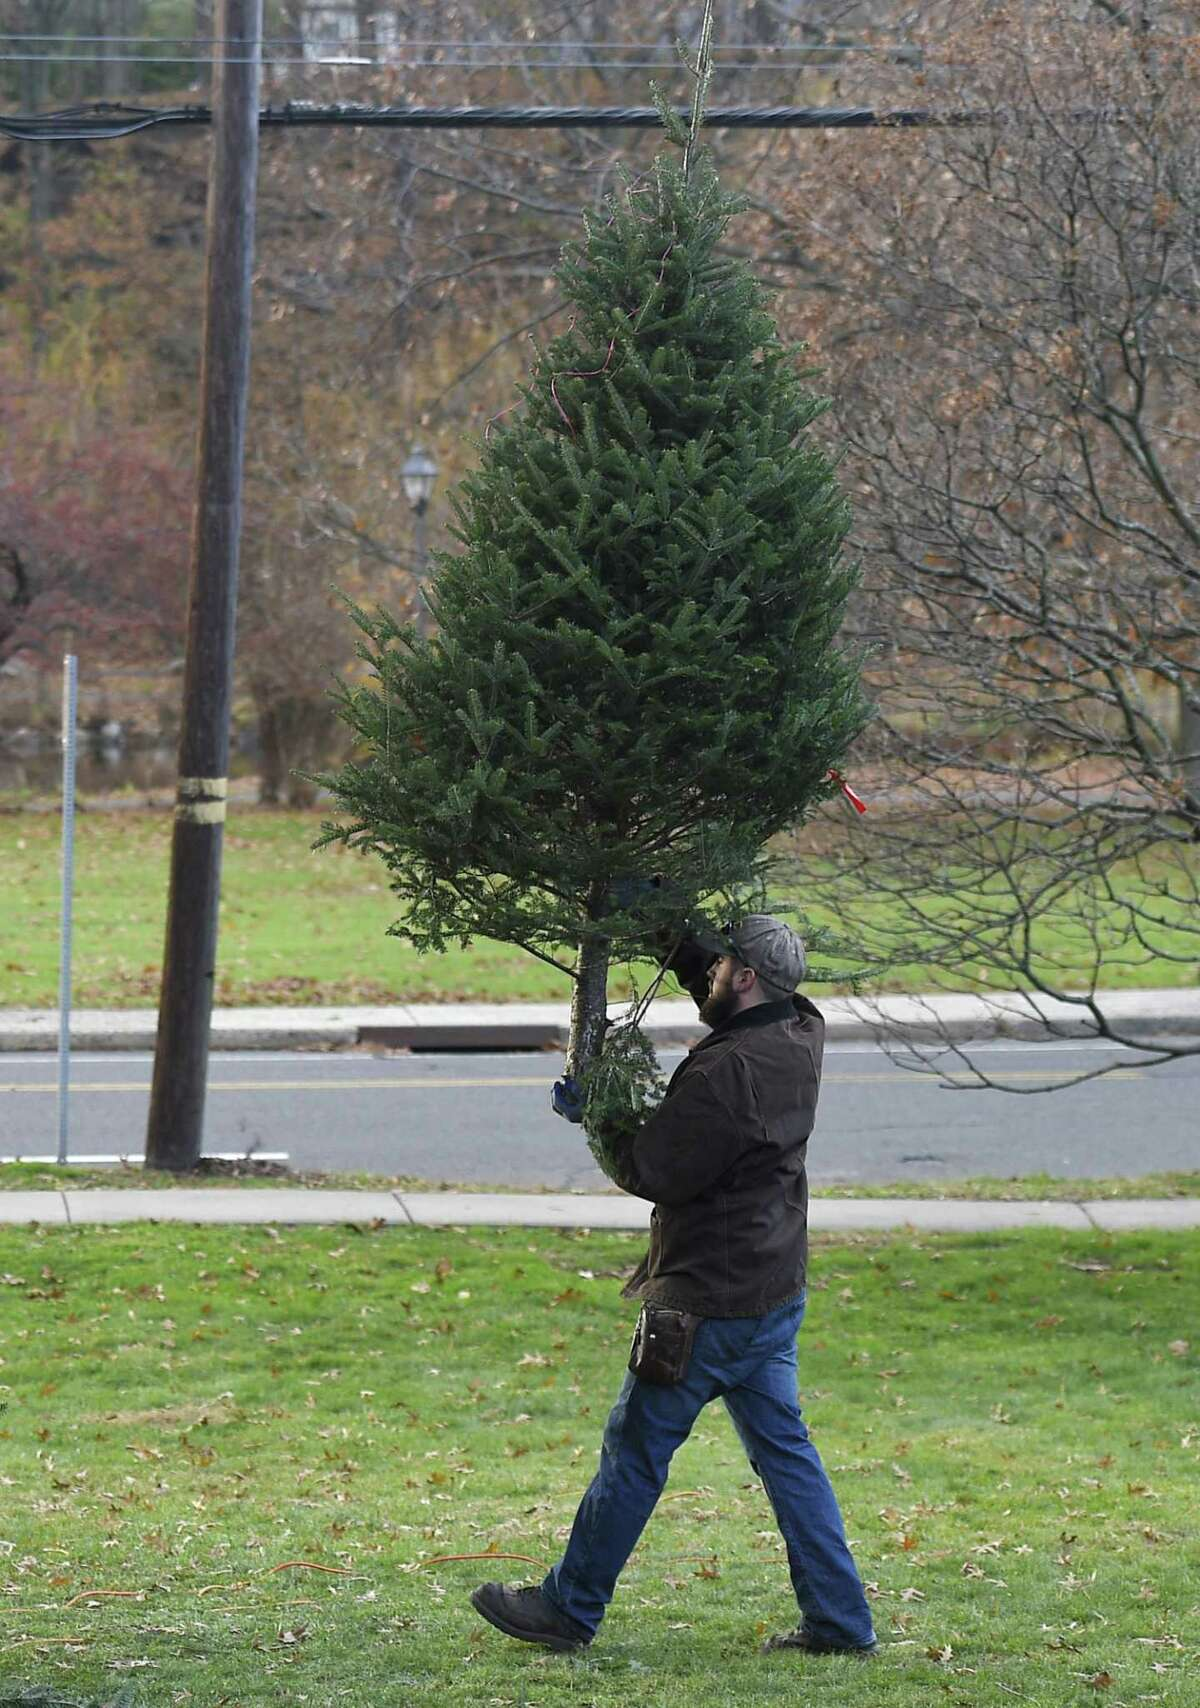 Church volunteerTom Grunow carries a tree at the annual Christmas Tree & Wreath Sale at First Congregational Church of Old Greenwich in Old Greenwich, Conn. Sunday, Nov. 25, 2018. FCCOG is selling 450 top grade New Hampshire trees and 200 wreaths with all benefits going to charities Kids in Crisis, SoundWaters, Pacific House, Building 1 Community, BackCountry Jazz, and The Den for Grieving Kids.